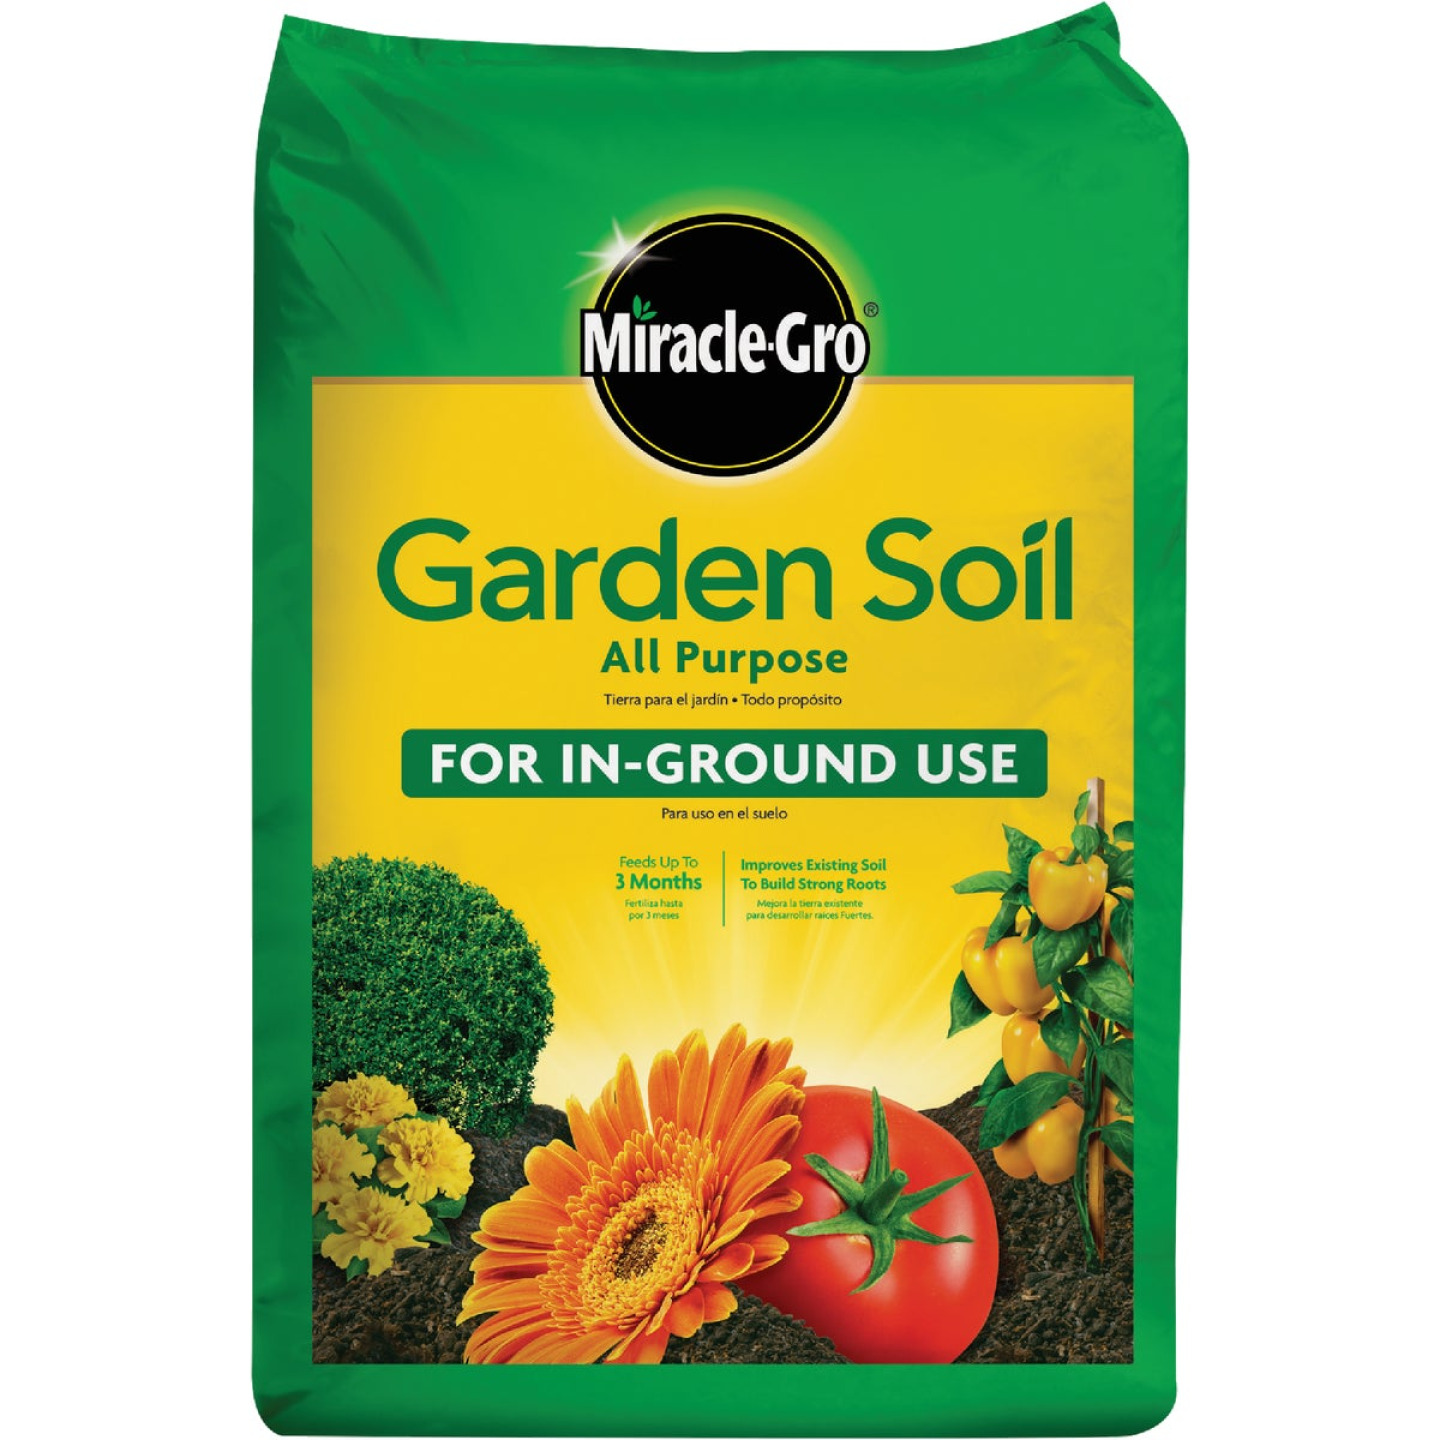 Miracle-Gro 1 Cu. Ft. 36 Lb. All Purpose Garden Soil Image 1